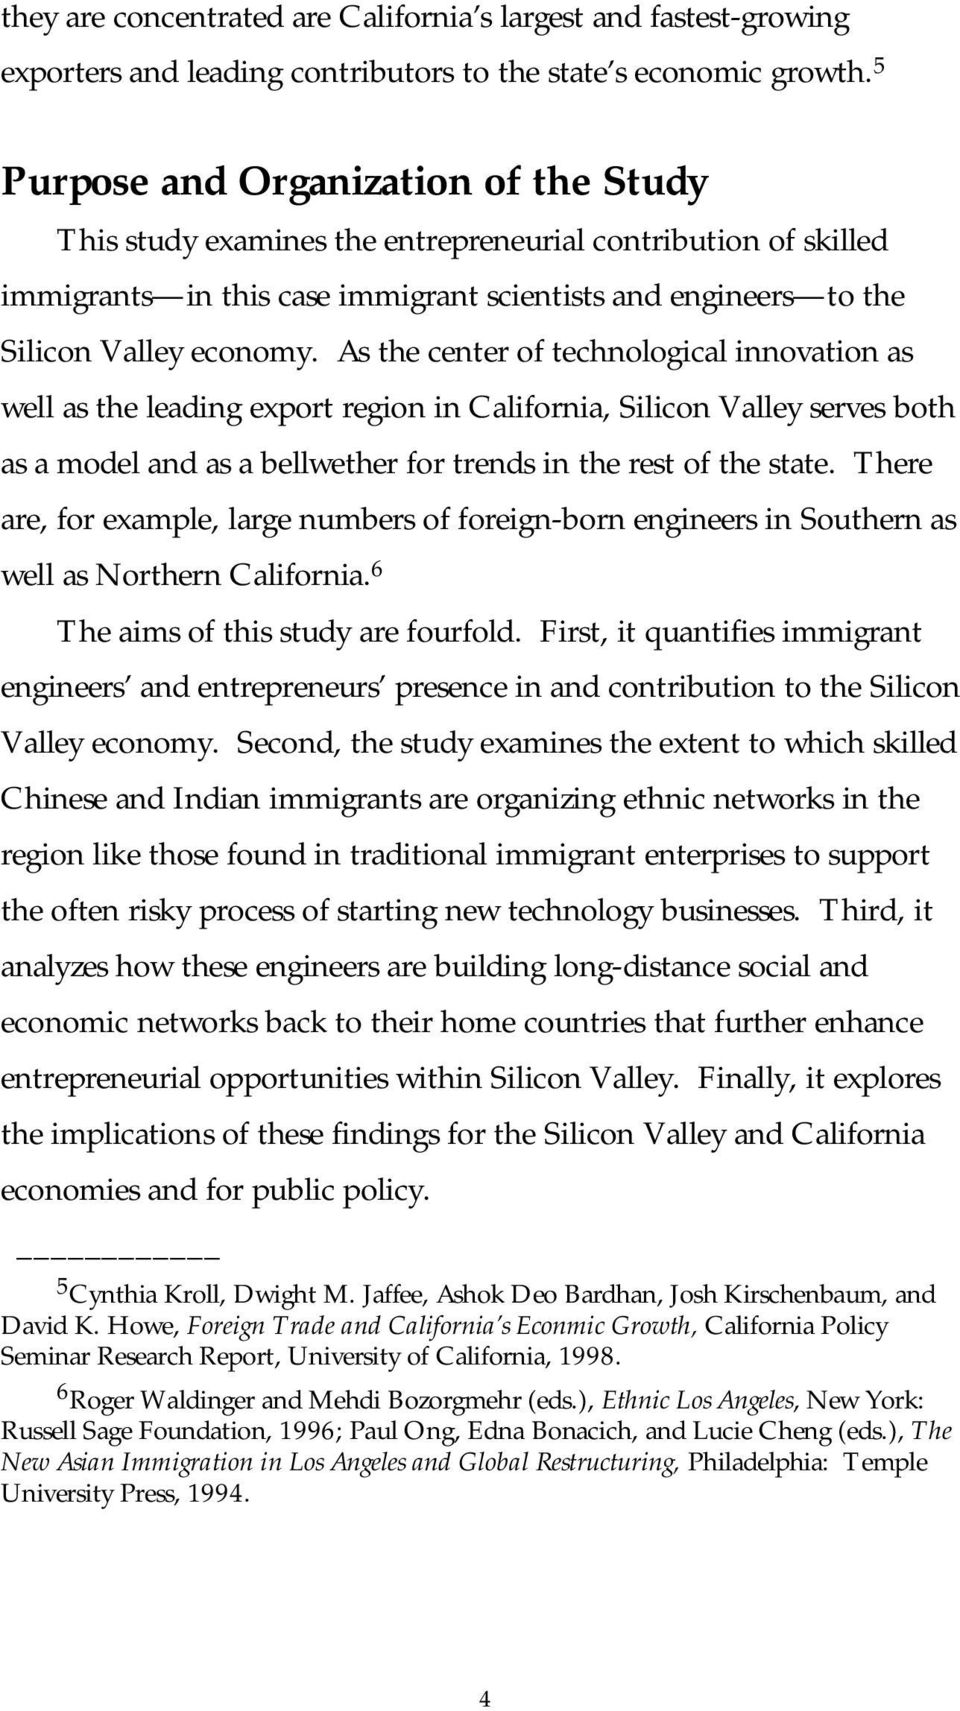 As the center of technological innovation as well as the leading export region in California, Silicon Valley serves both as a model and as a bellwether for trends in the rest of the state.